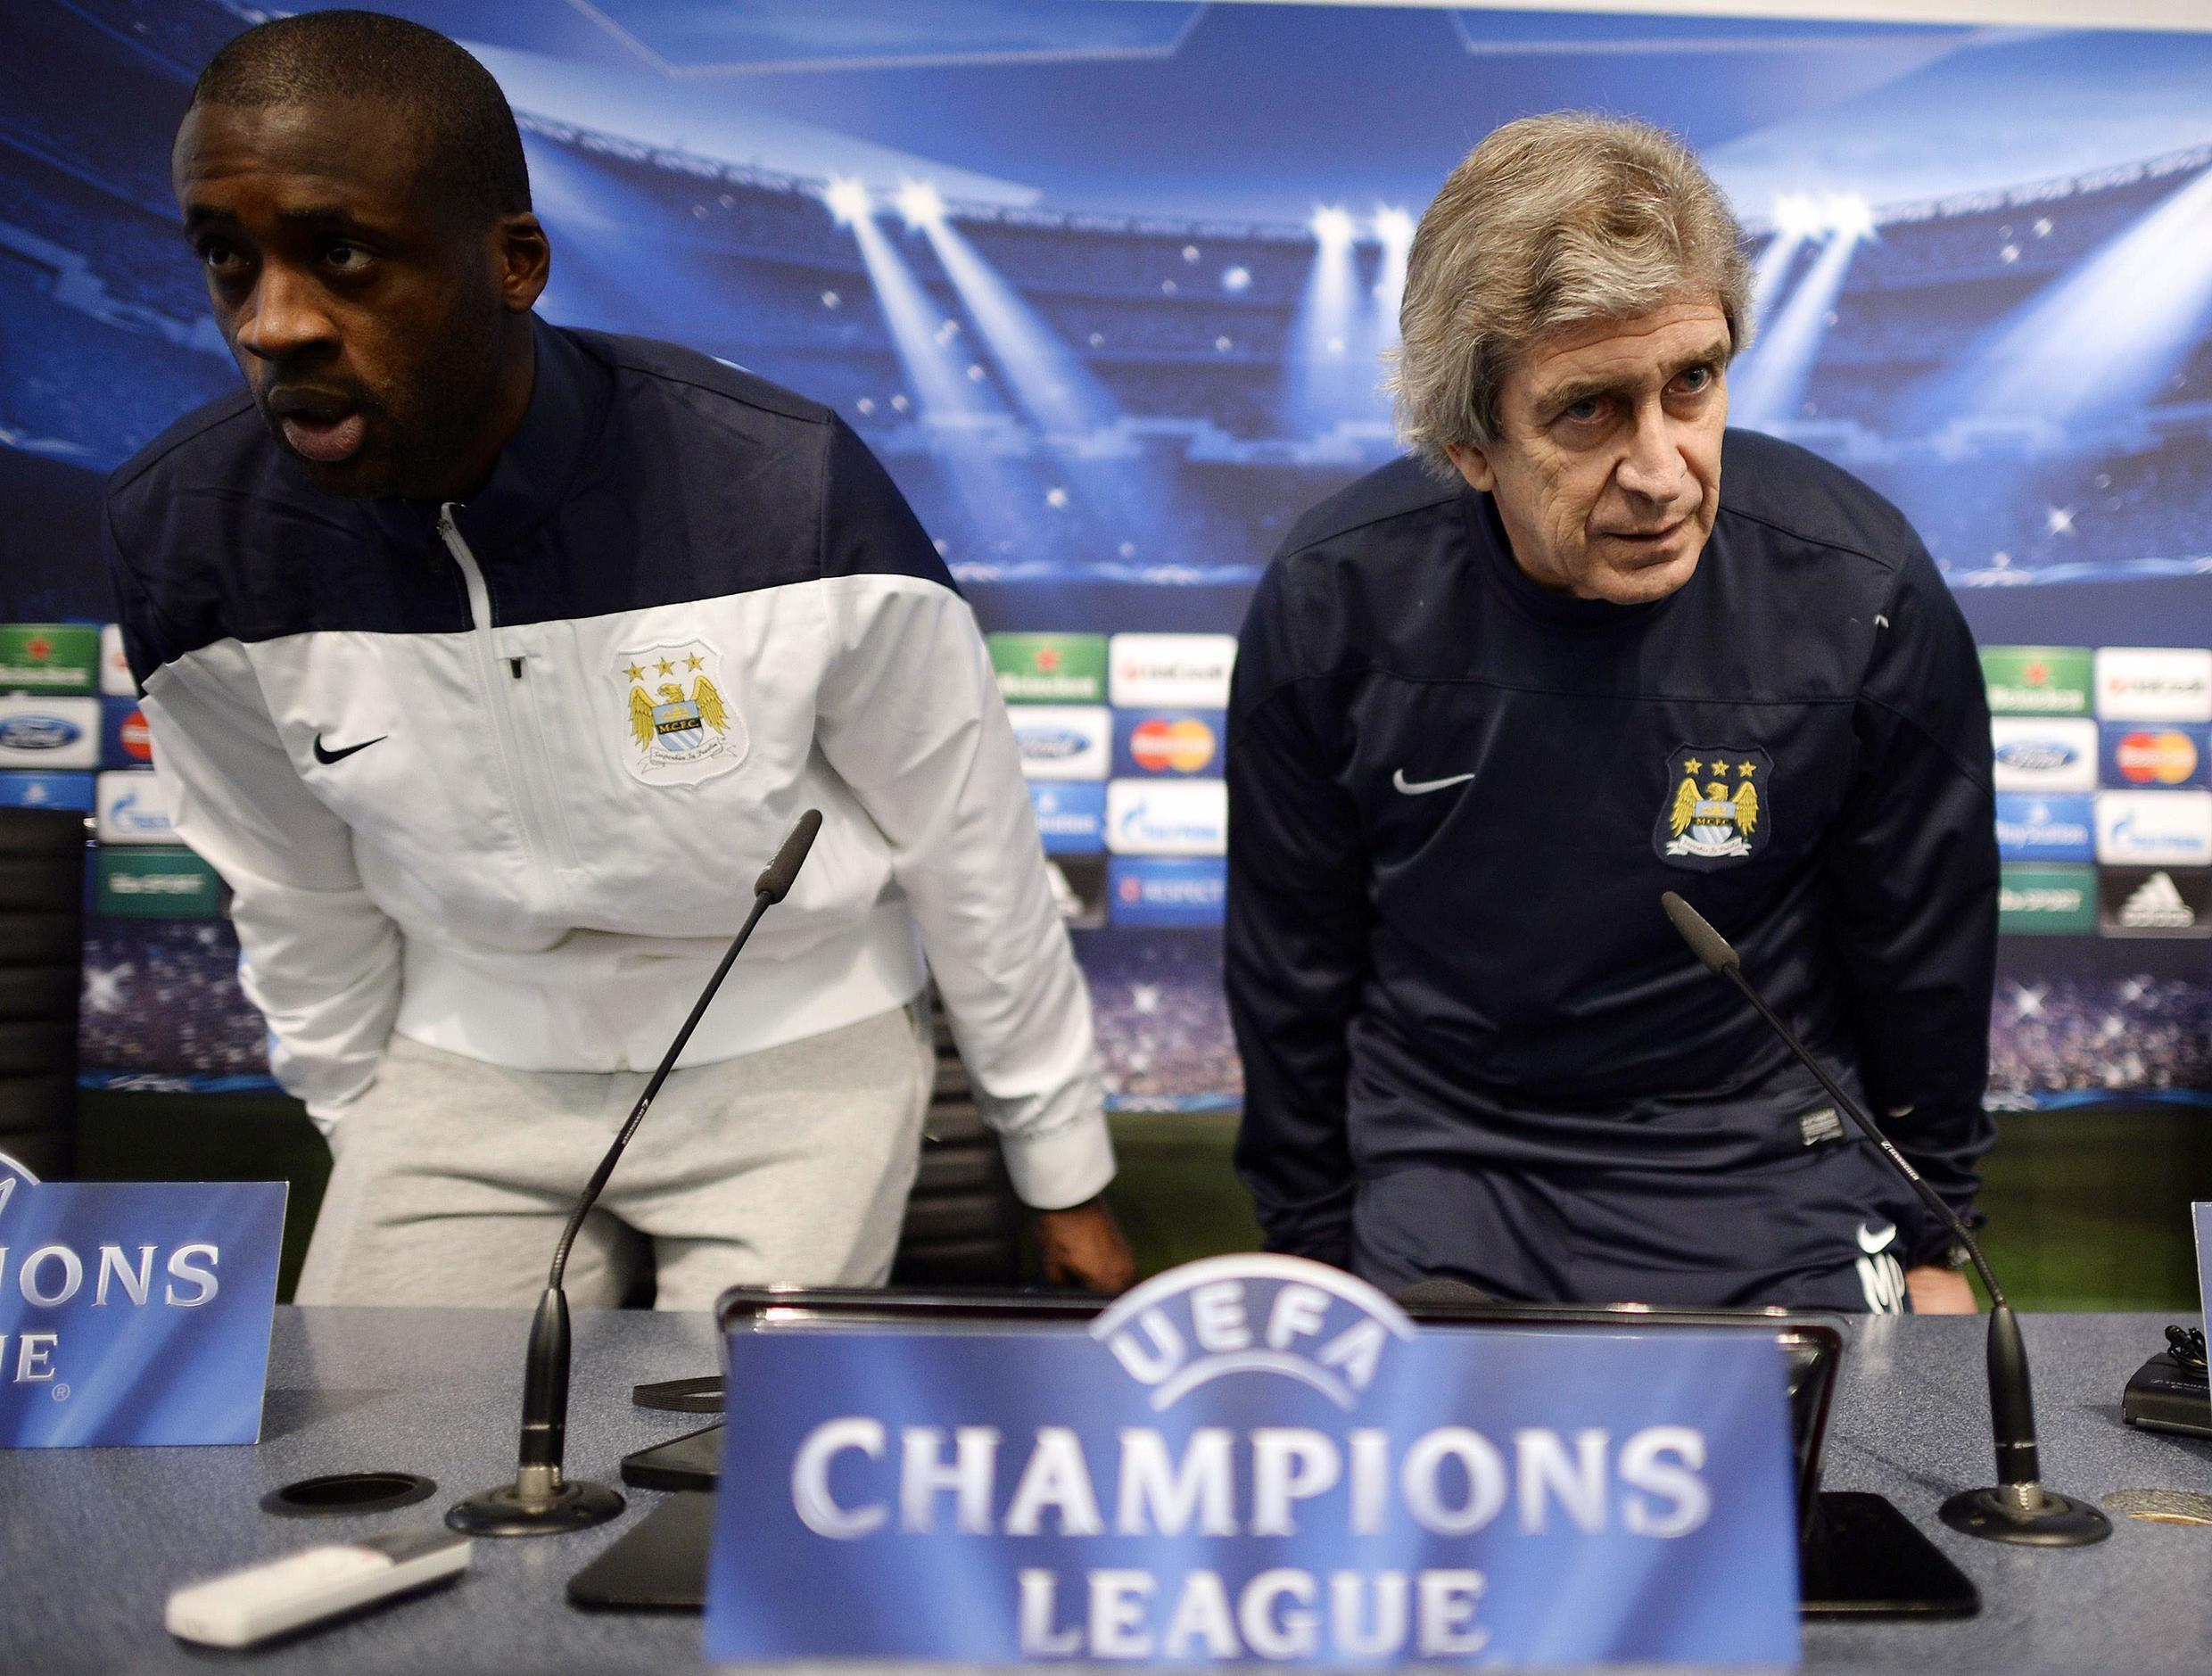 City boss Manuel Pellegrini (right) had tried to quell talk of his team romping to the English Premier League title.